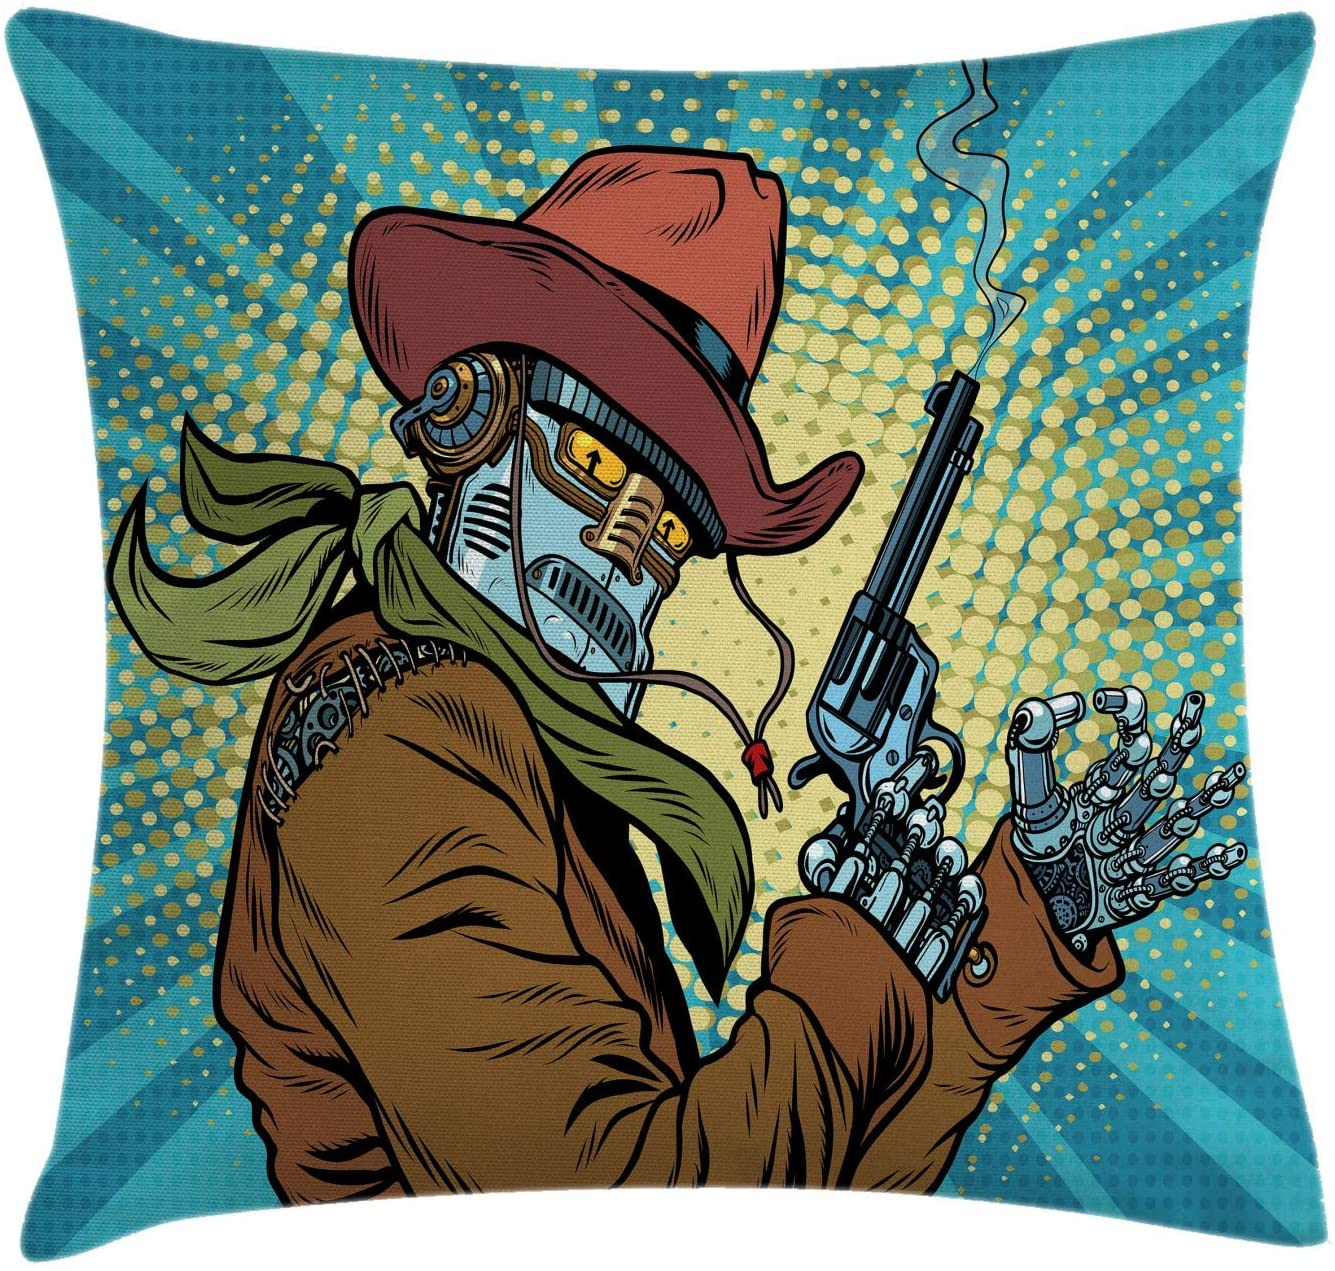 Ambesonne Blue Throw Pillow Cushion Cover, Steampunk and Western Style Robot Cowboy Makes OK Gesture Illustration, Decorative Square Accent Pillow Case, 20 X 20, Petrol Blue